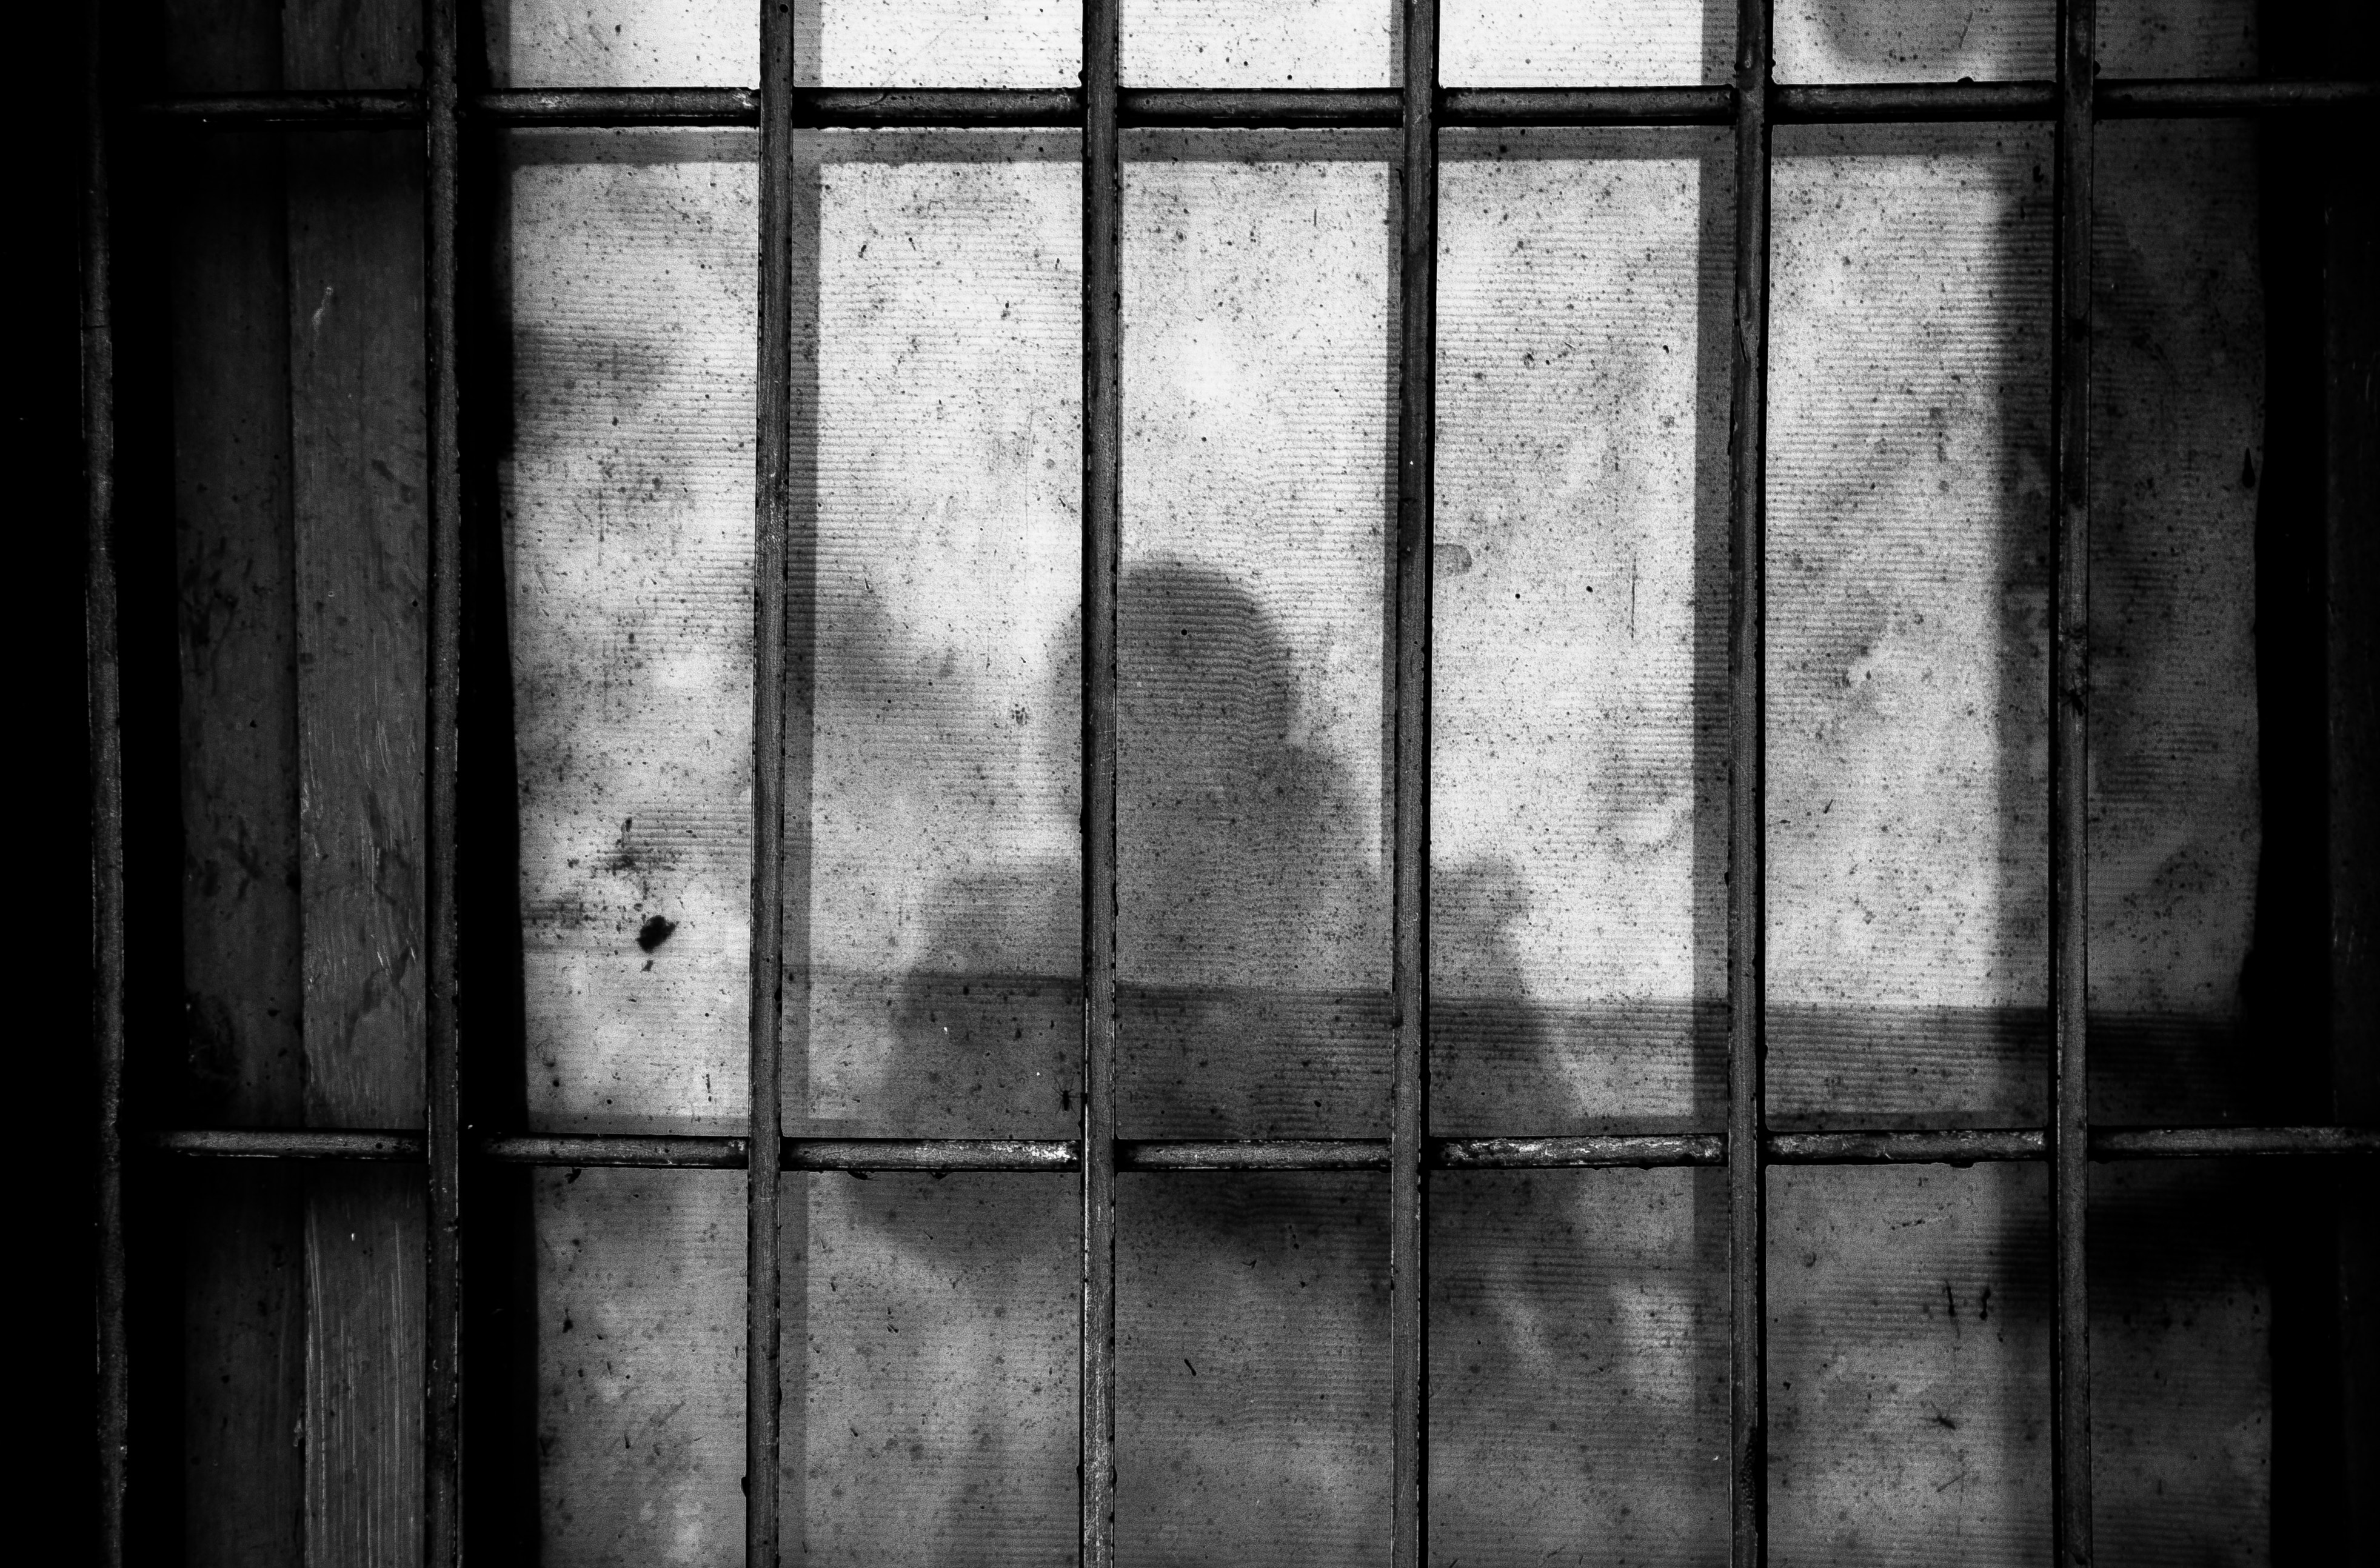 End the torture of solitary confinement